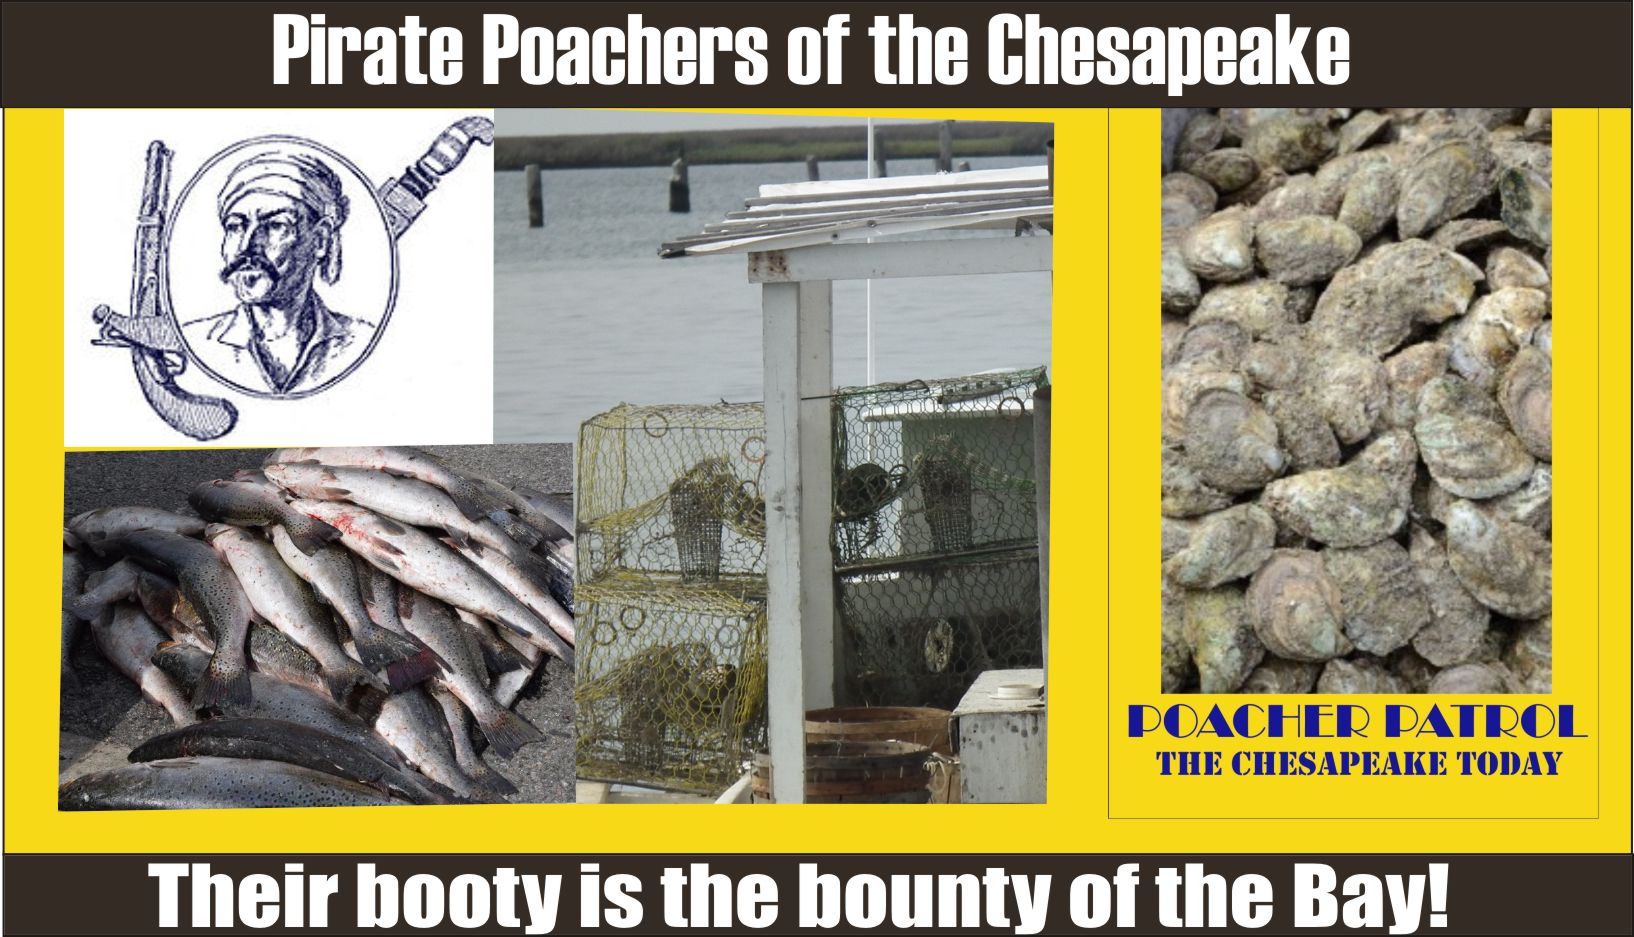 OUTLAW PIRATE POACHERS OF THE CHESAPEAKE: Commerical fishing suspensions/revocation and aquaculture suspensions for May 30, 2019